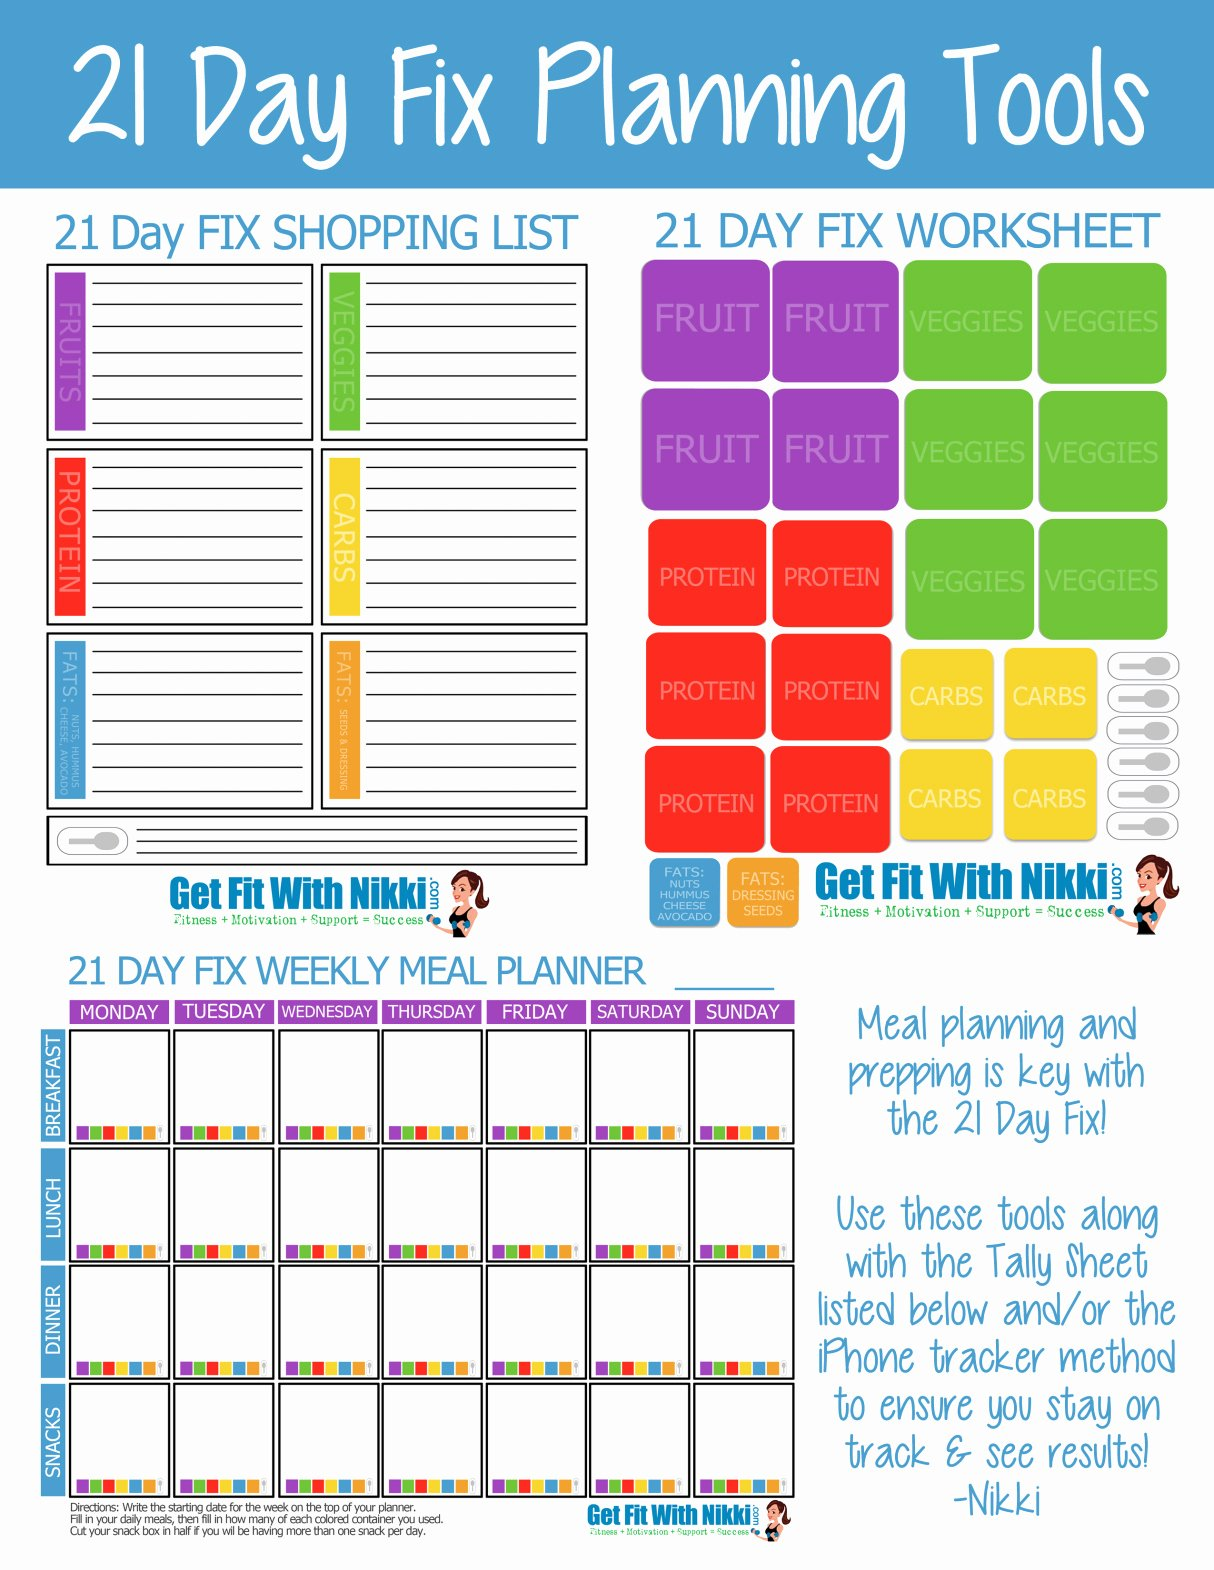 21 Day Fix Meal Planning Tips & My Favorite Foods